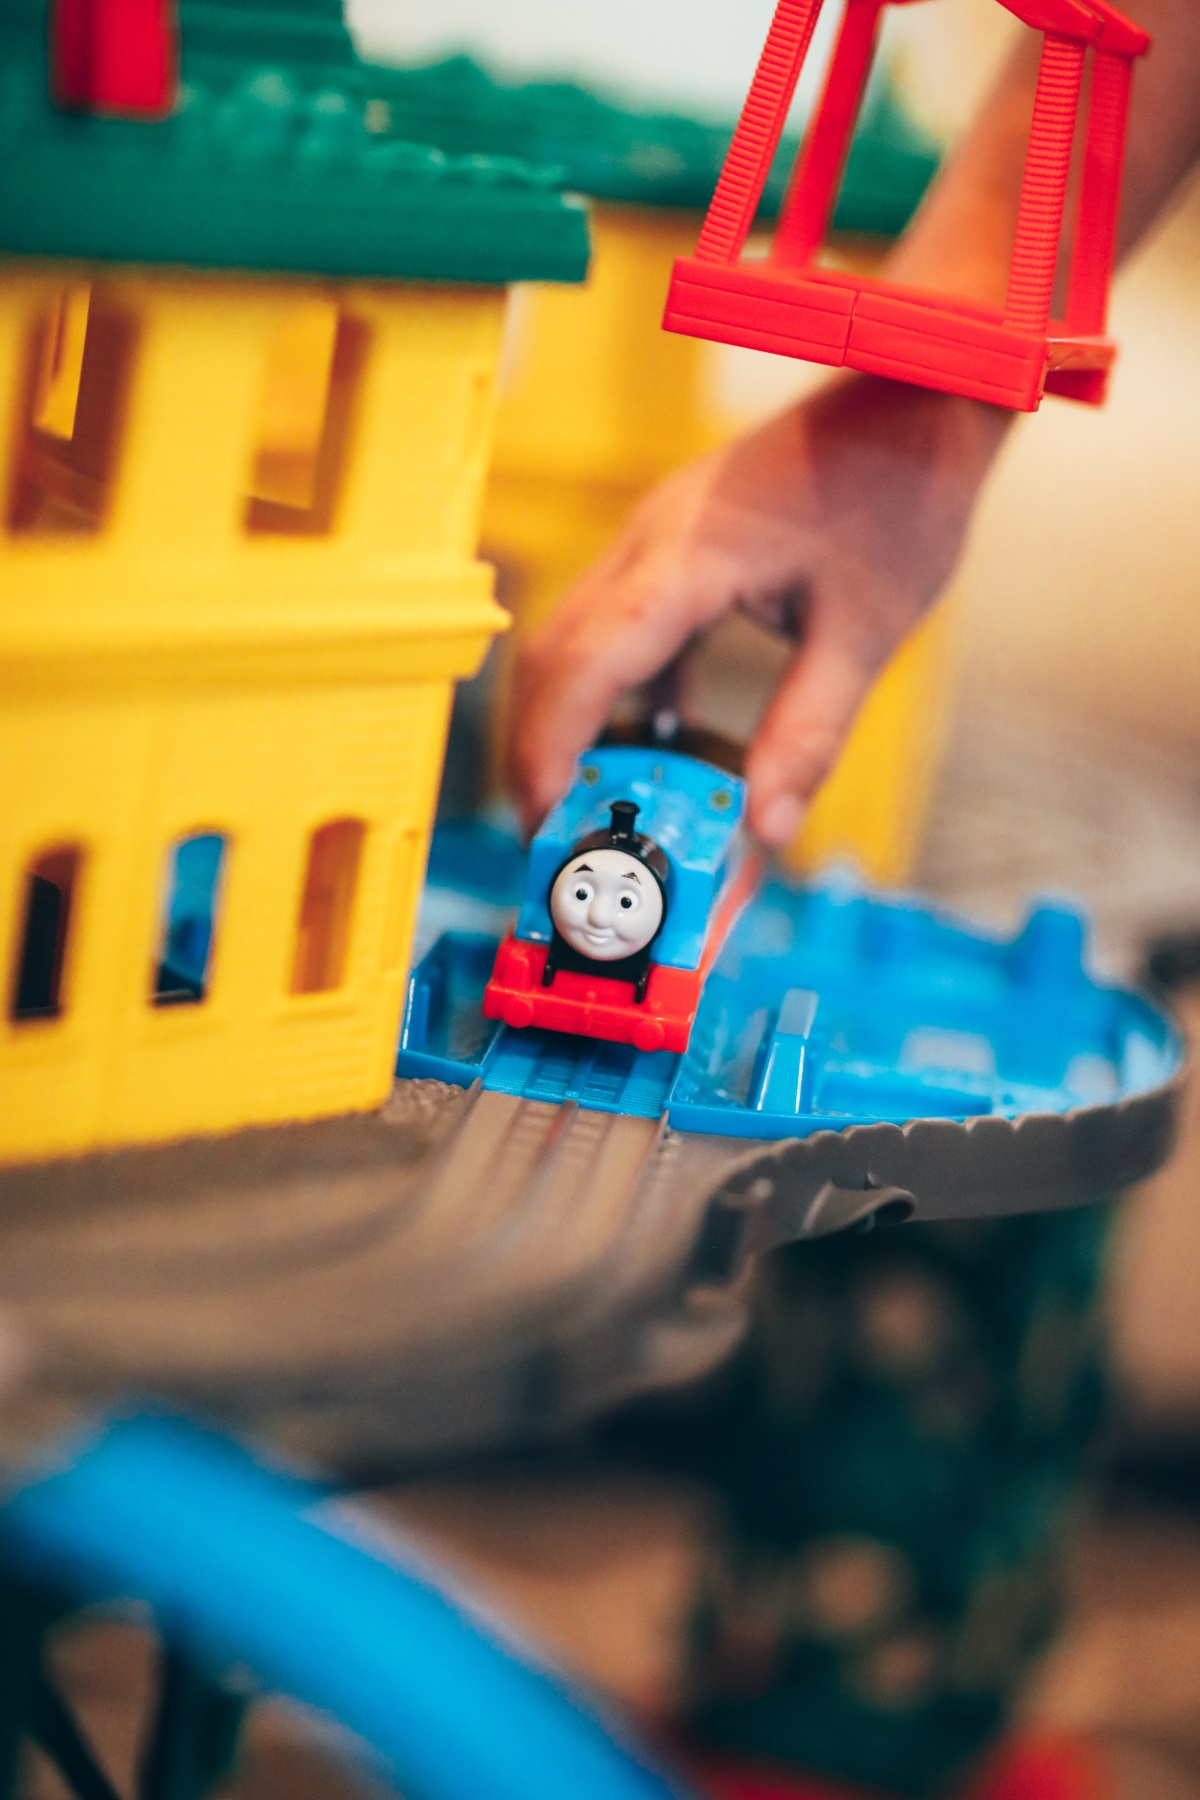 Holiday season is coming! Need some gift-giving ideas? Orange Country Blogger Debbie Savage is sharing one of her favorite gift giving ideas for kids featuring Thomas & Friends at Walmart.